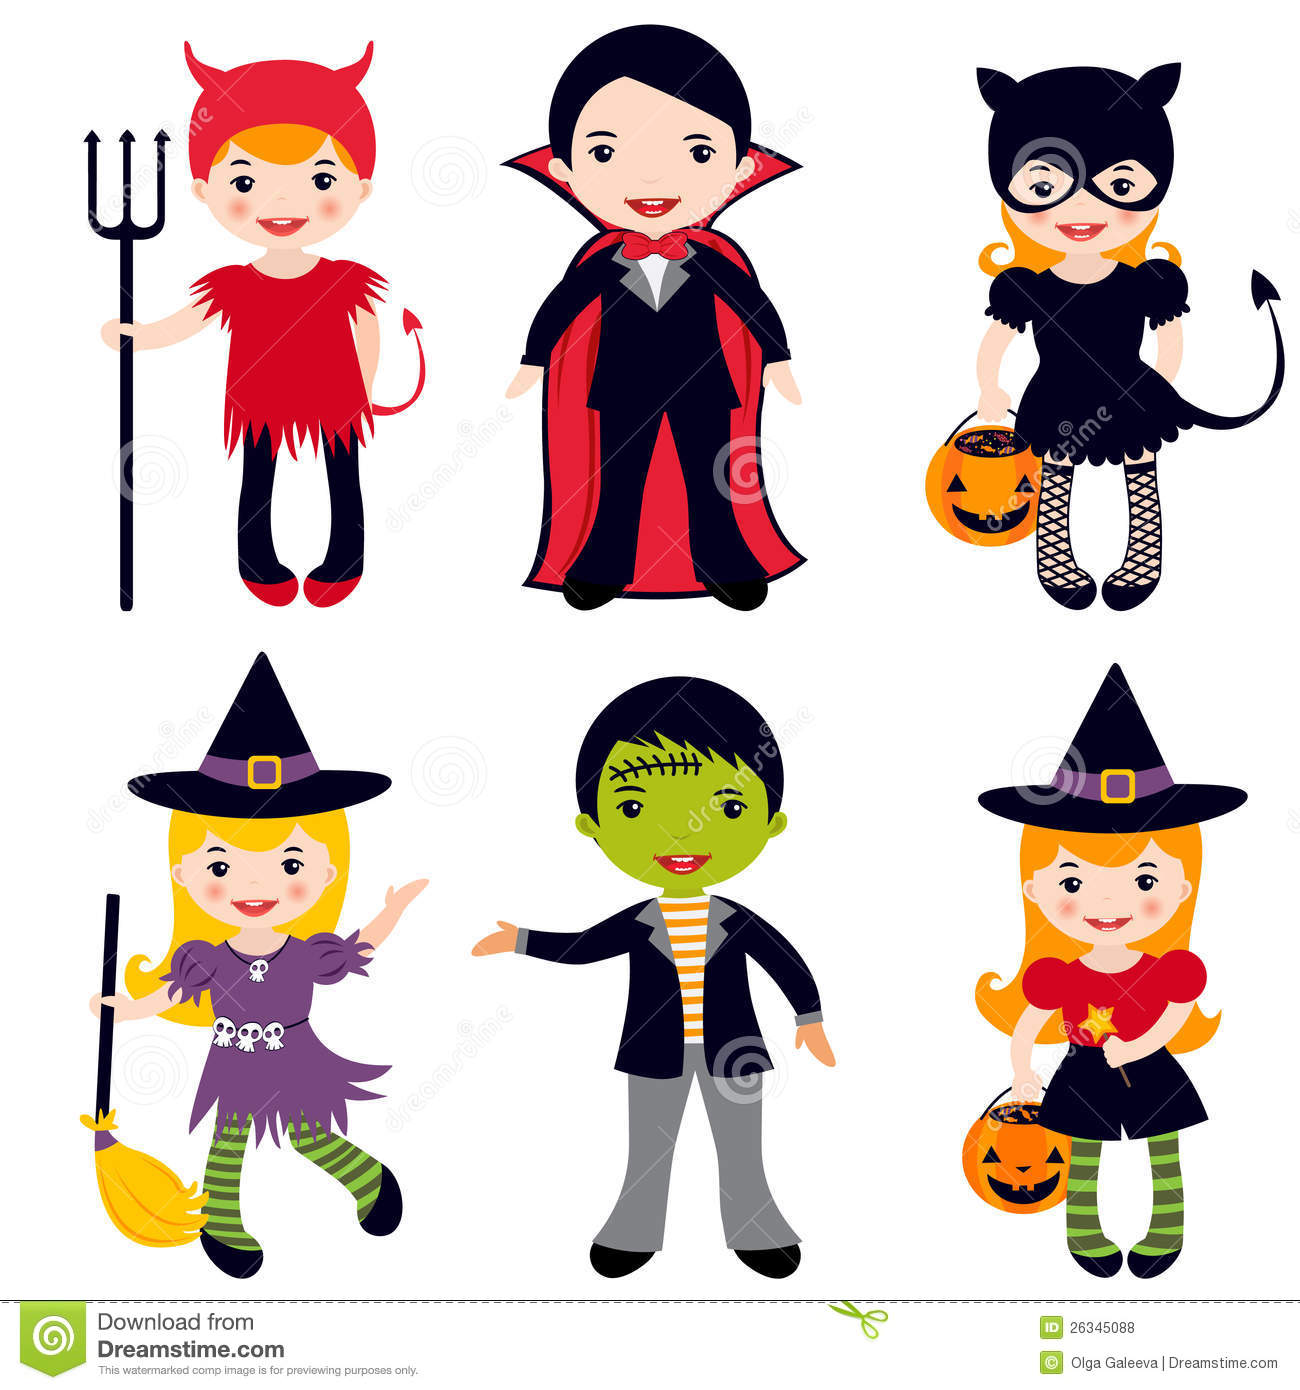 Characters free download best. Halloween clipart character